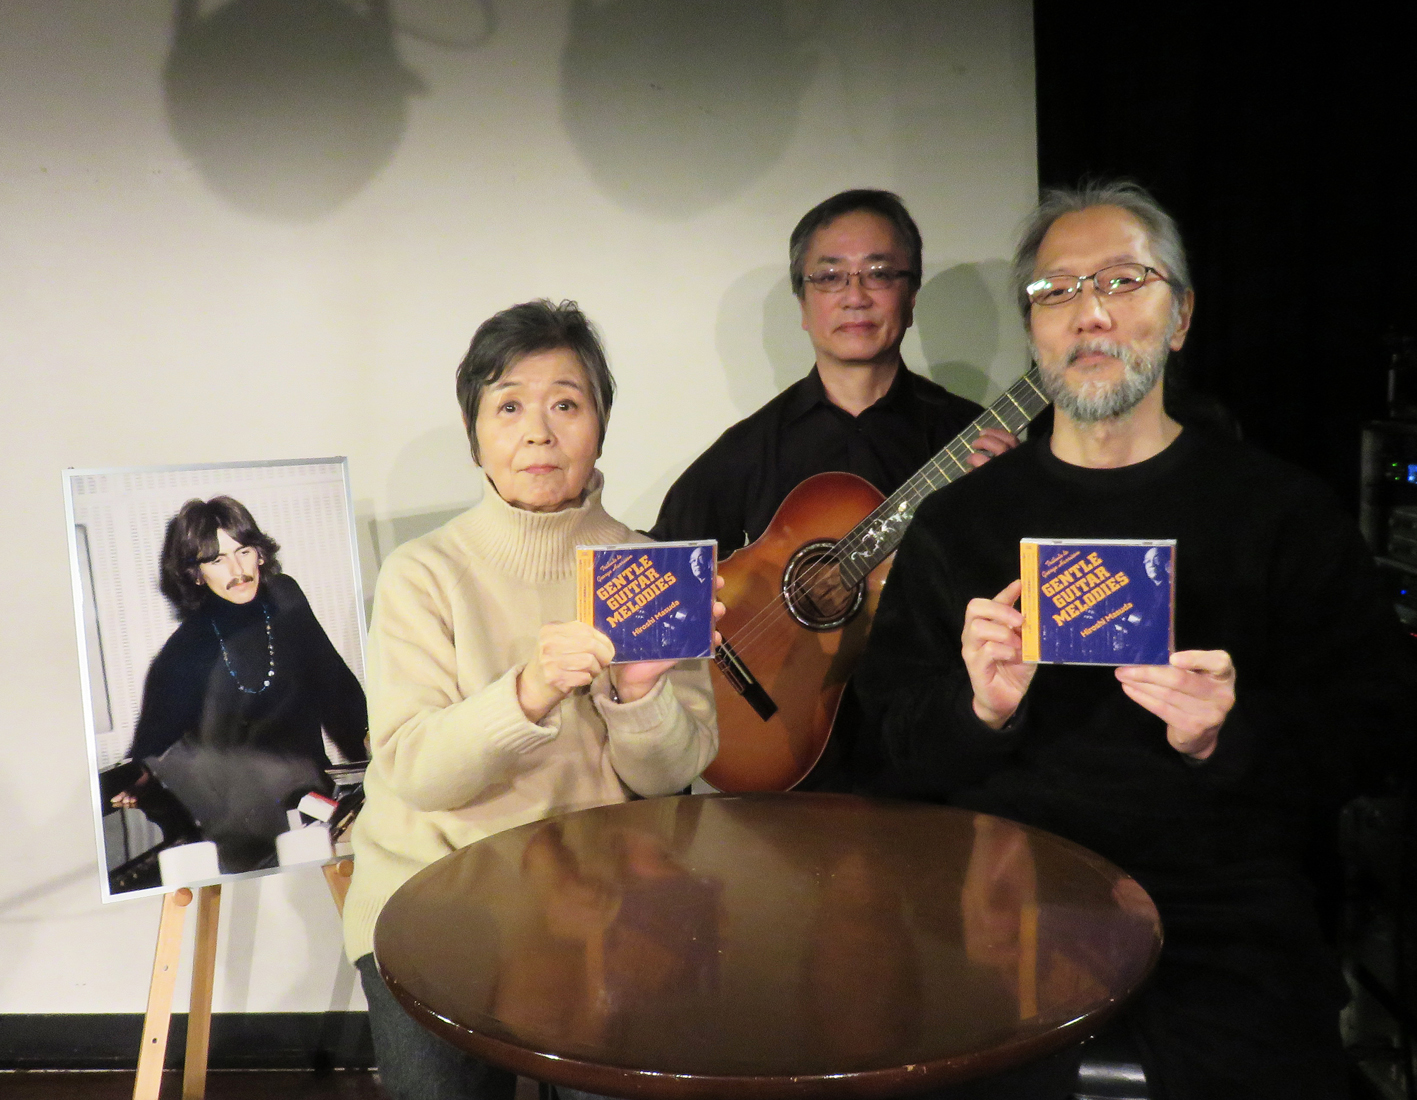 『GENTLE GUITAR MELODIES~A Tribute to George Harrison~』 発売記念 星加ルミ子×藤本国彦トーク&益田 洋ライヴ・イベント・レポート PART.2